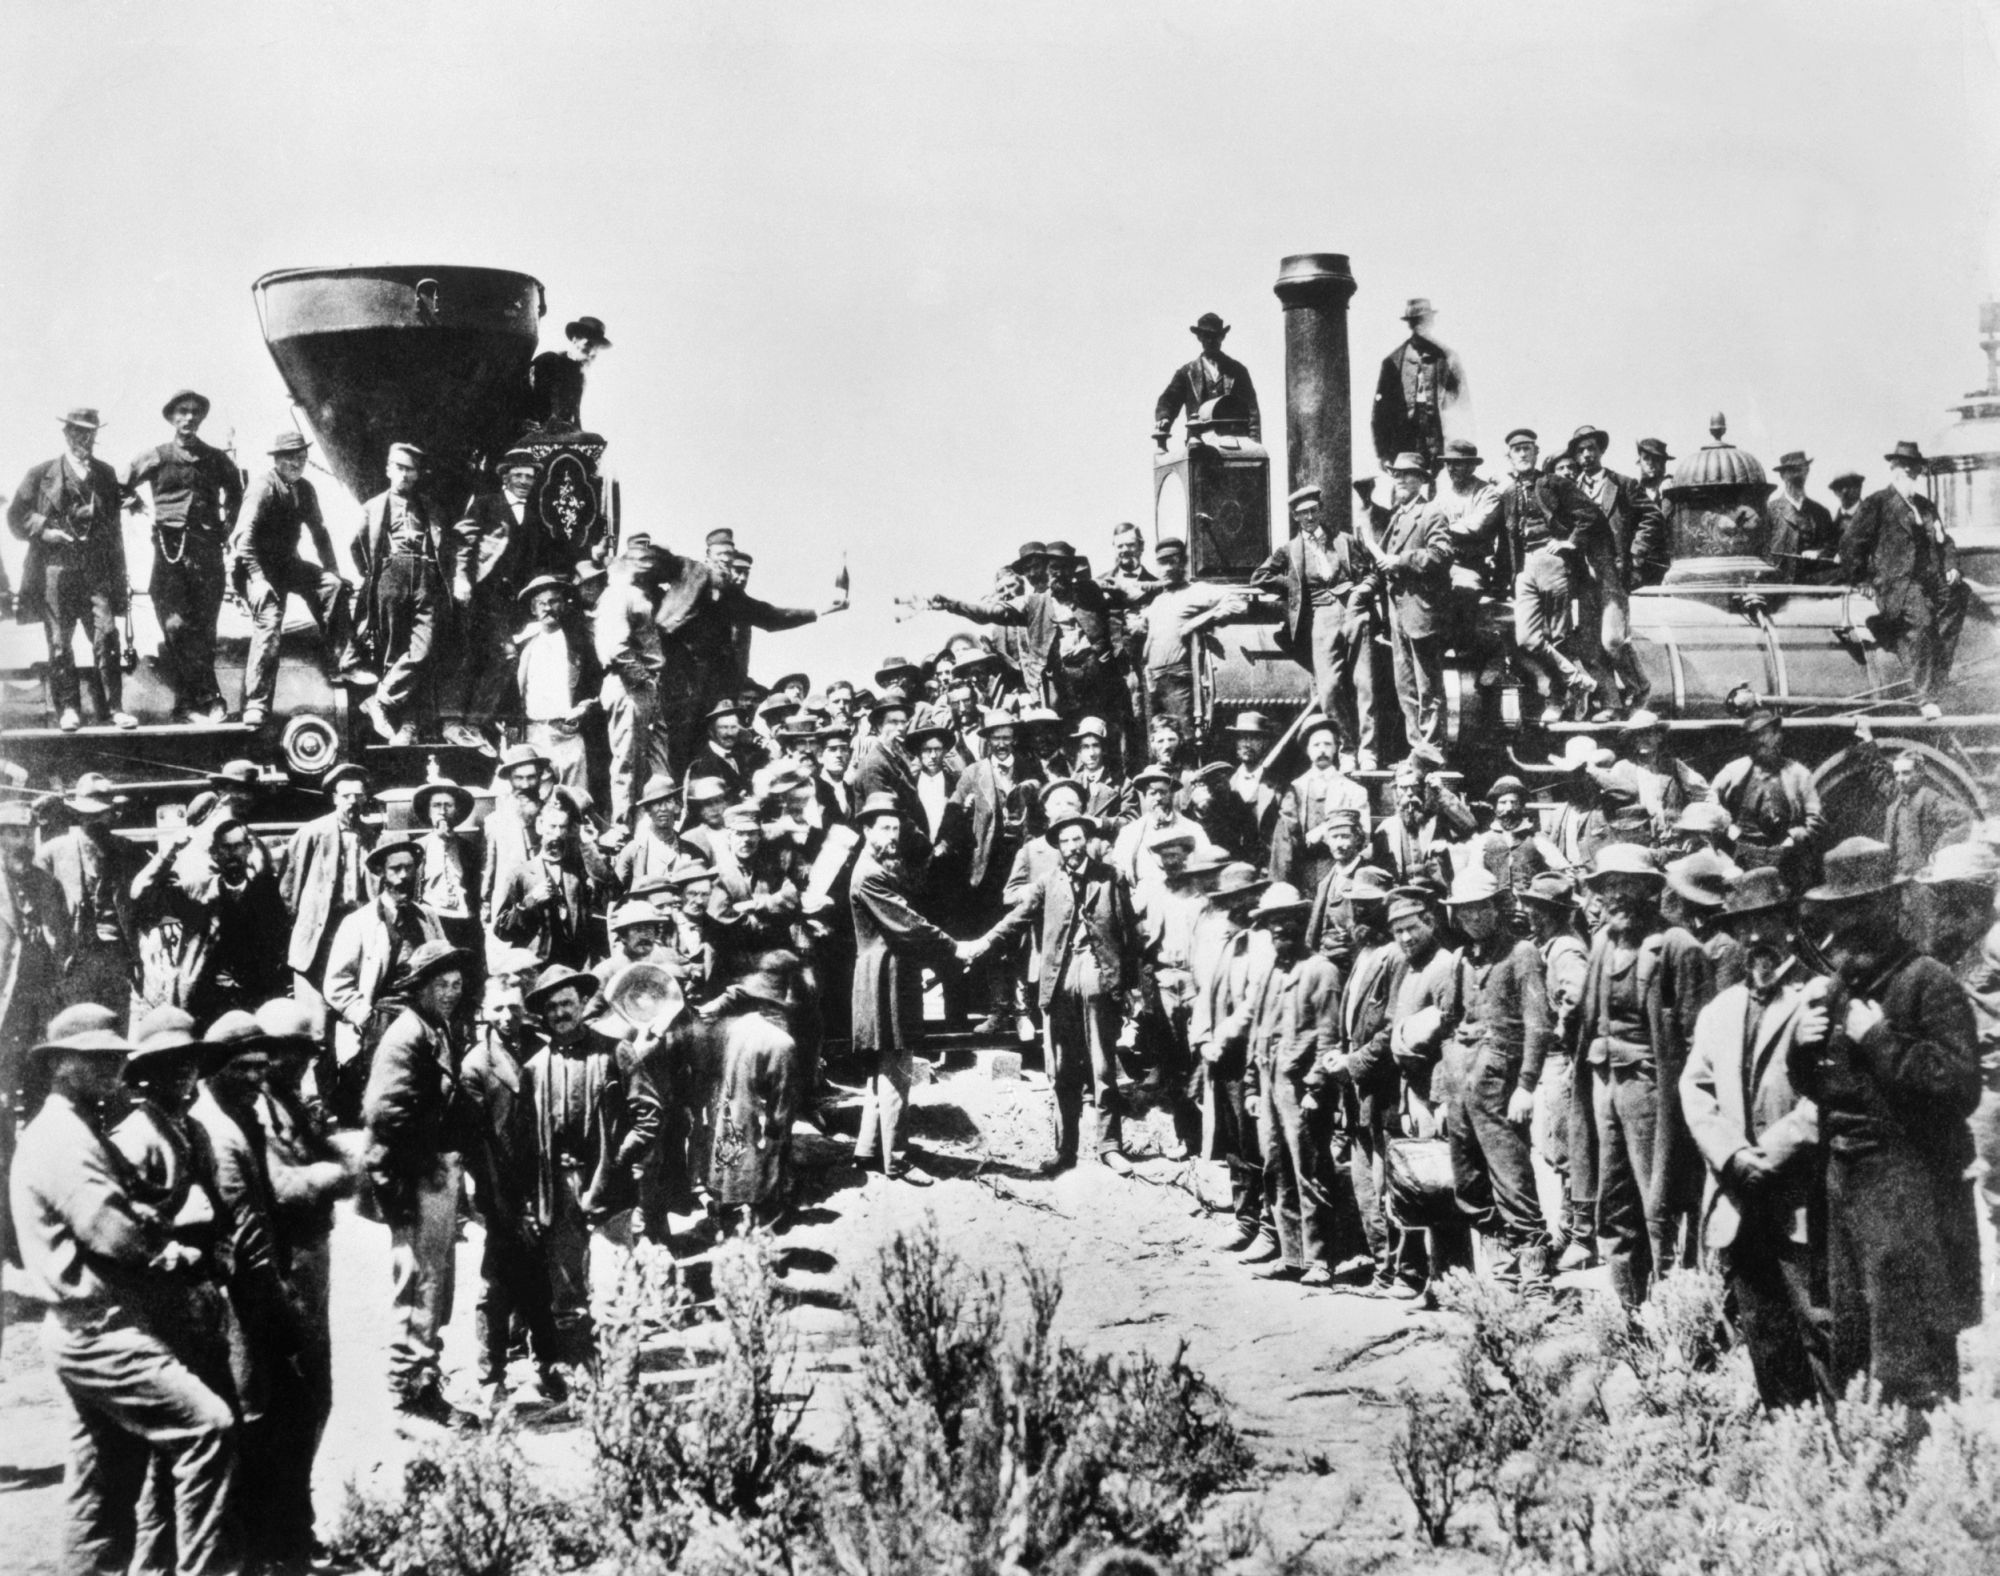 the first transcontinental railroad The first transcontinental railroad, approved by congress in the midst of war, helped connect the country in ways never before possible americans could travel from coast to coast with speed, changing how americans lived, traded, and communicated while disrupting ways of life practiced for centuries by native american.